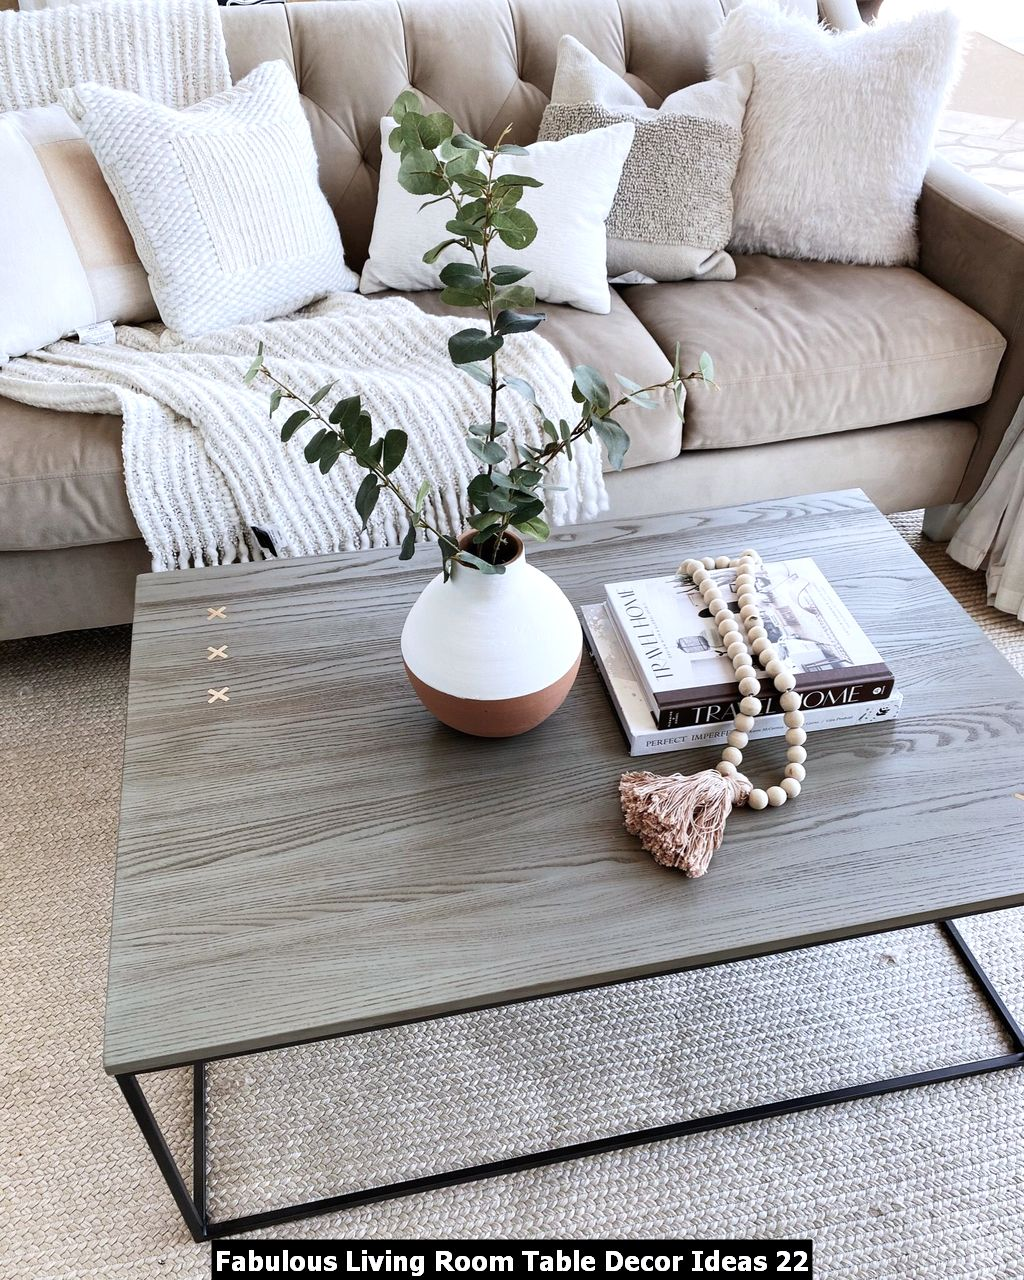 Fabulous Living Room Table Decor Ideas 22